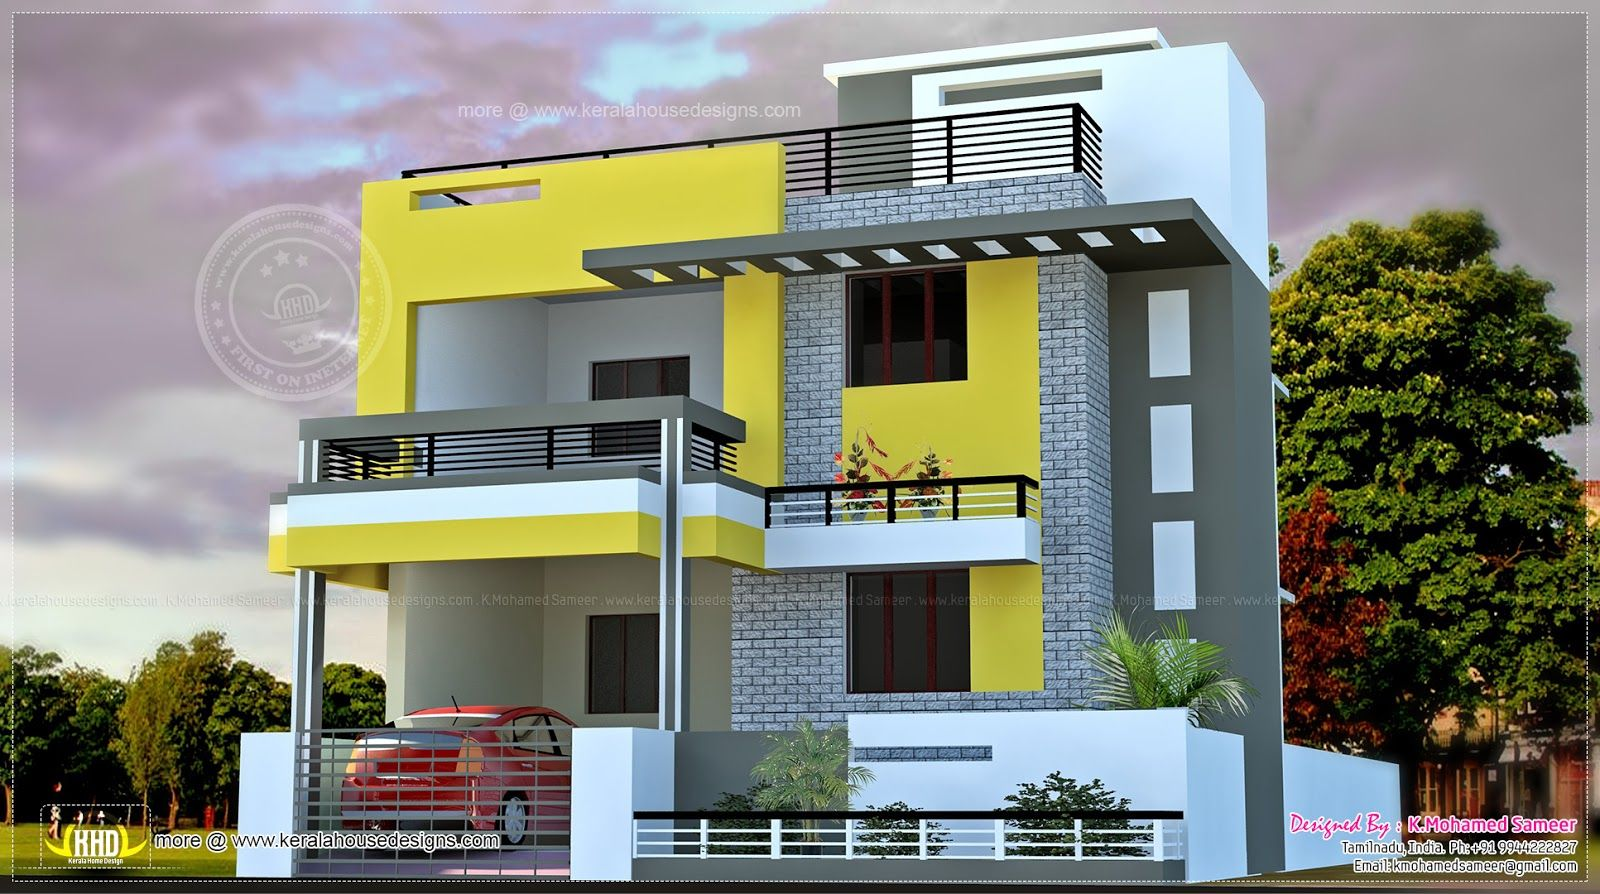 Elevations of residential buildings in indian photo Best modern home plans